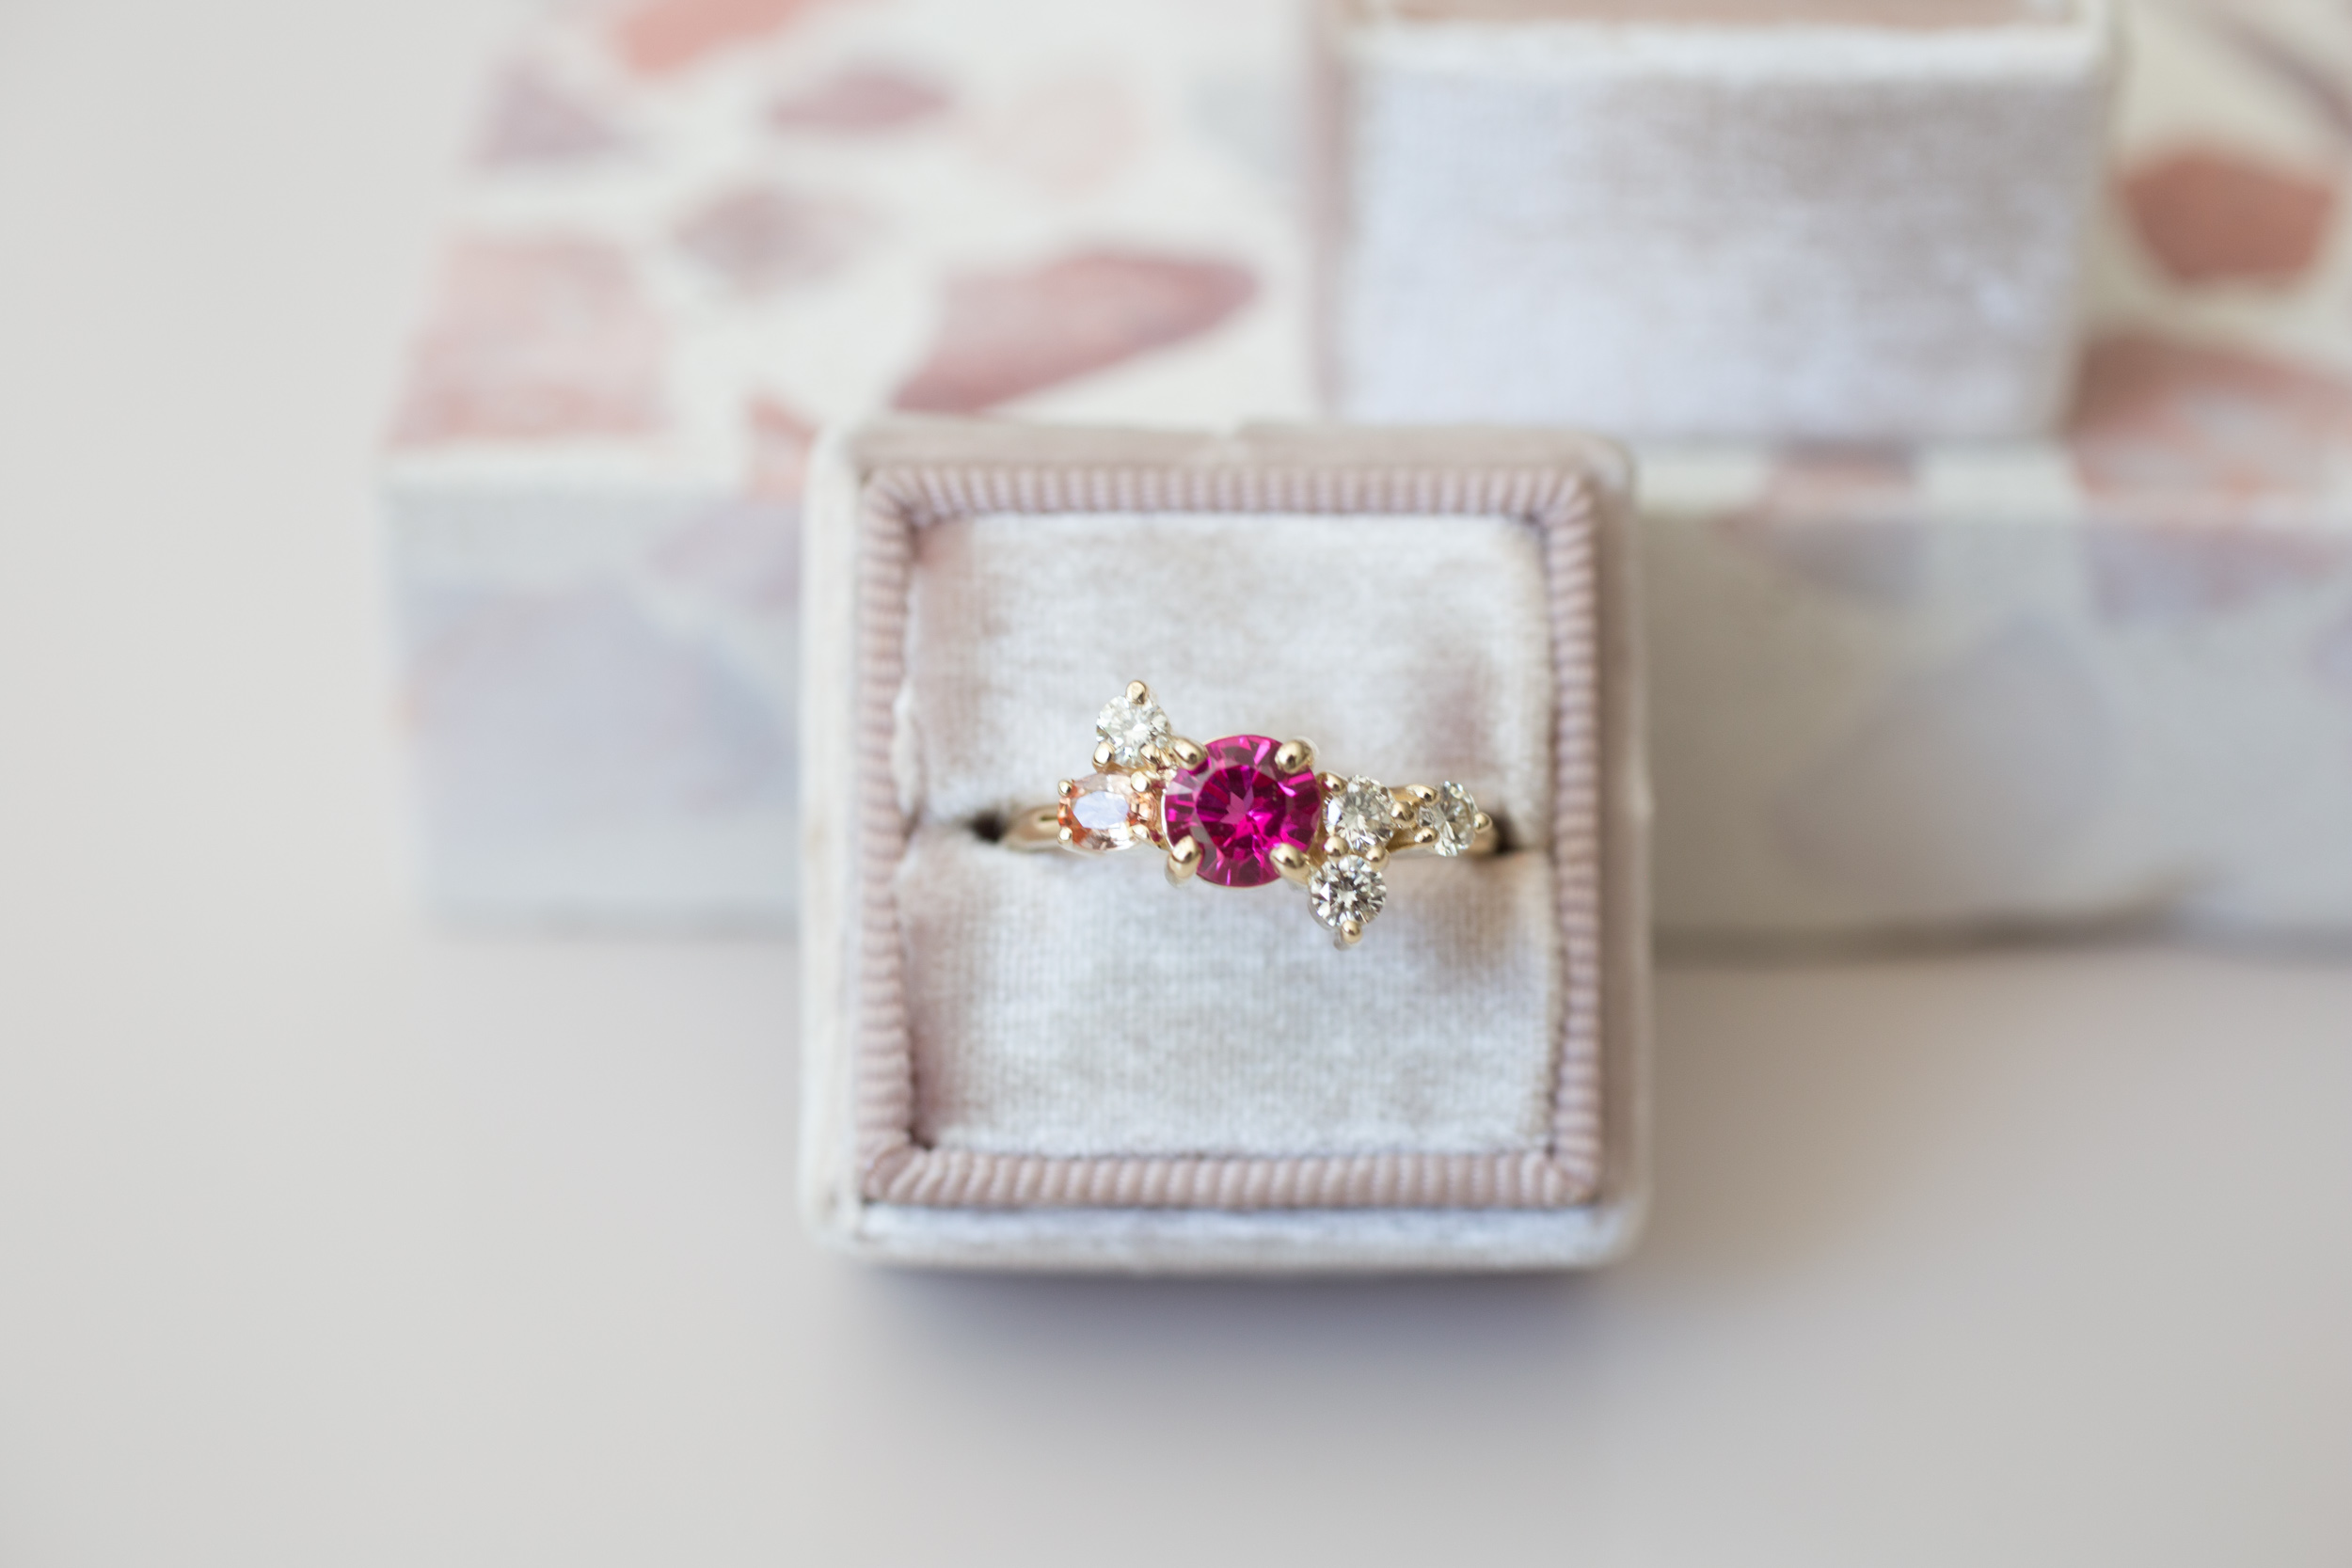 Ranjani + Deepak Heirloom Ruby and Diamond Cluster Ring-3.jpg